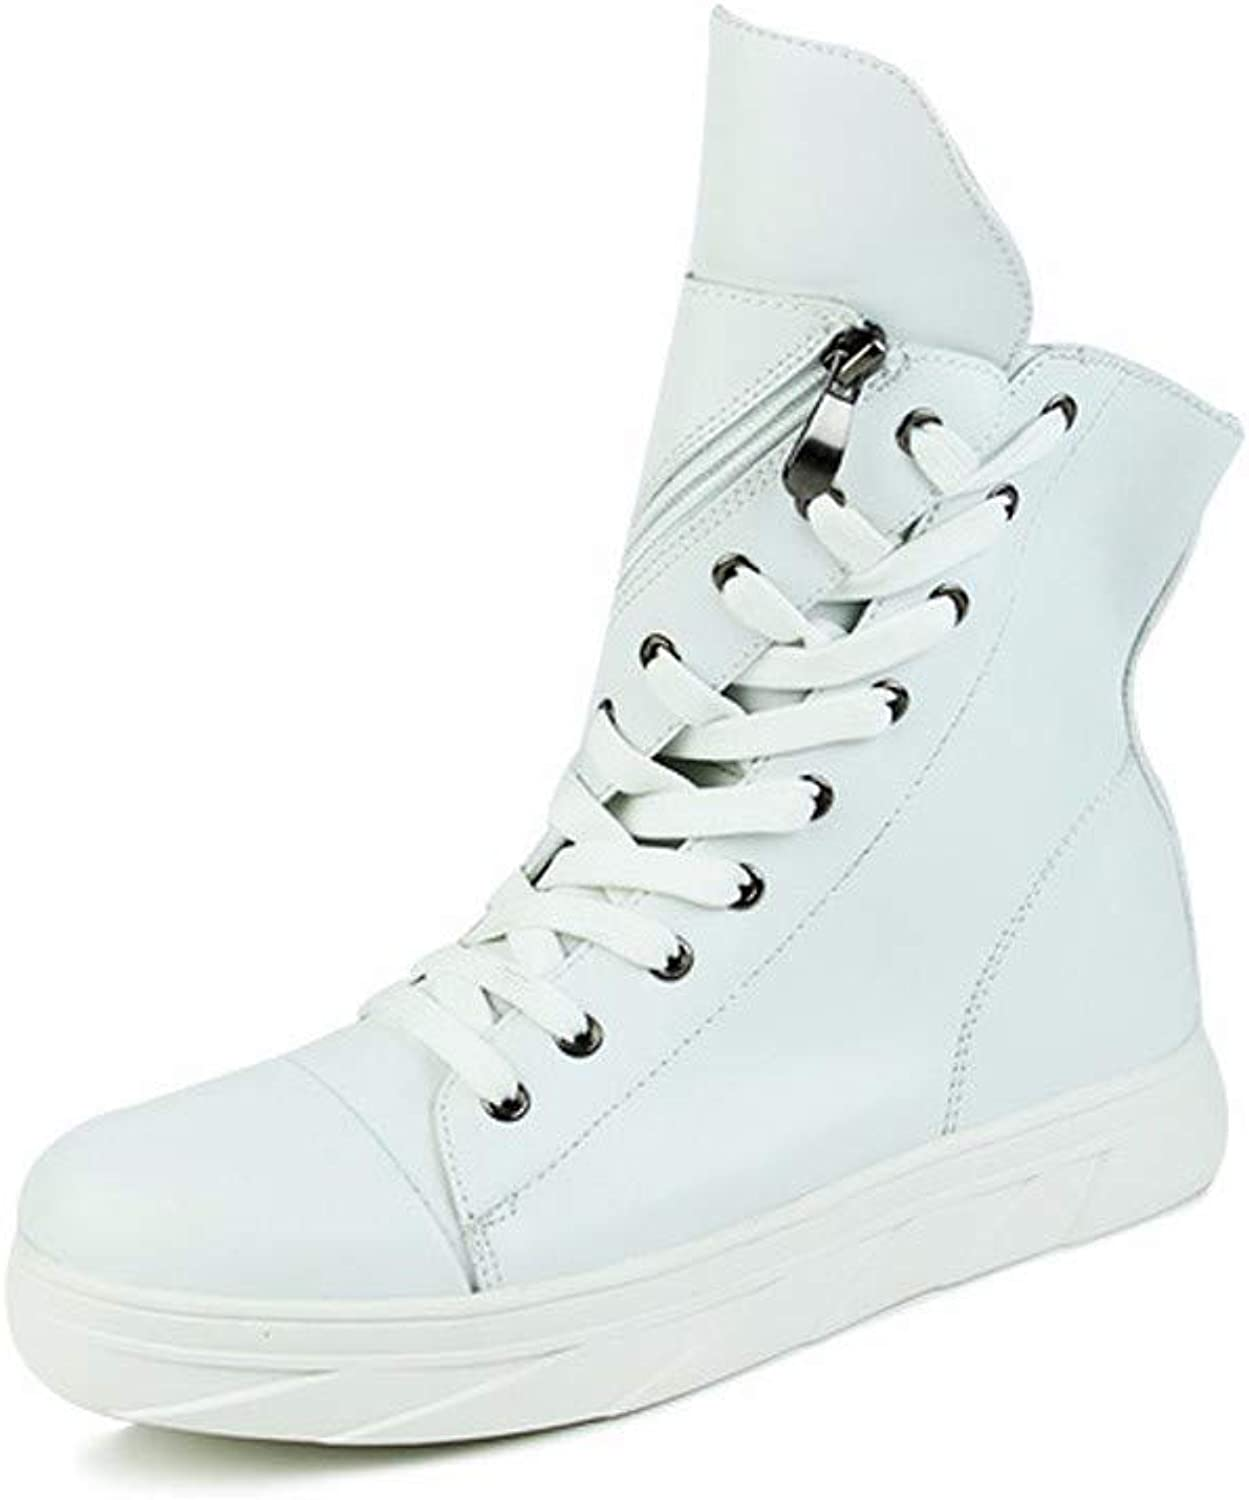 KMJBS-British Martin Boots Autumn Boots Military Boots Men'S Gang Locomotives Deserts Personalities White Forty-Four